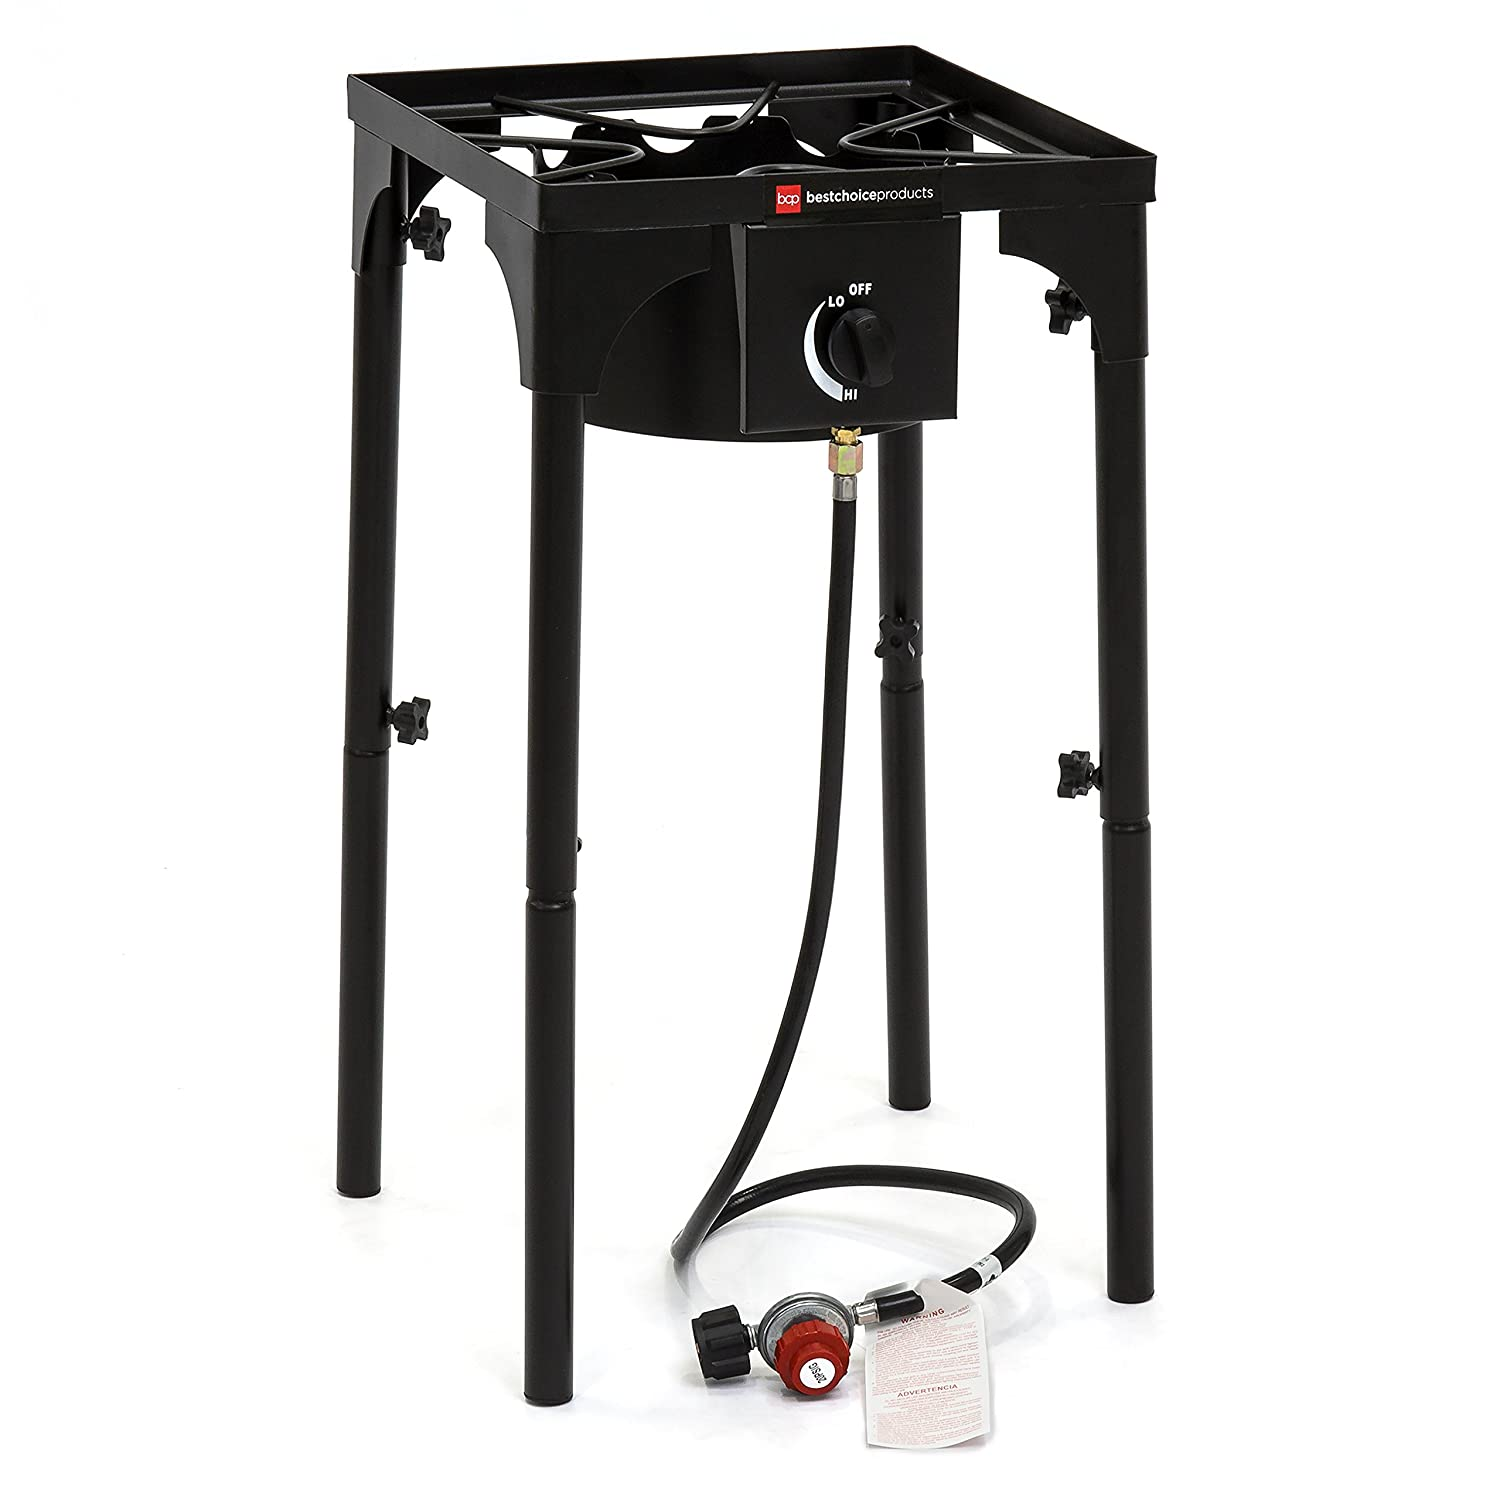 Best Choice Products 100,000 BTU Outdoor Portable Propane Gas High Pressure Single Burner Cooker Stove w/Removable Legs